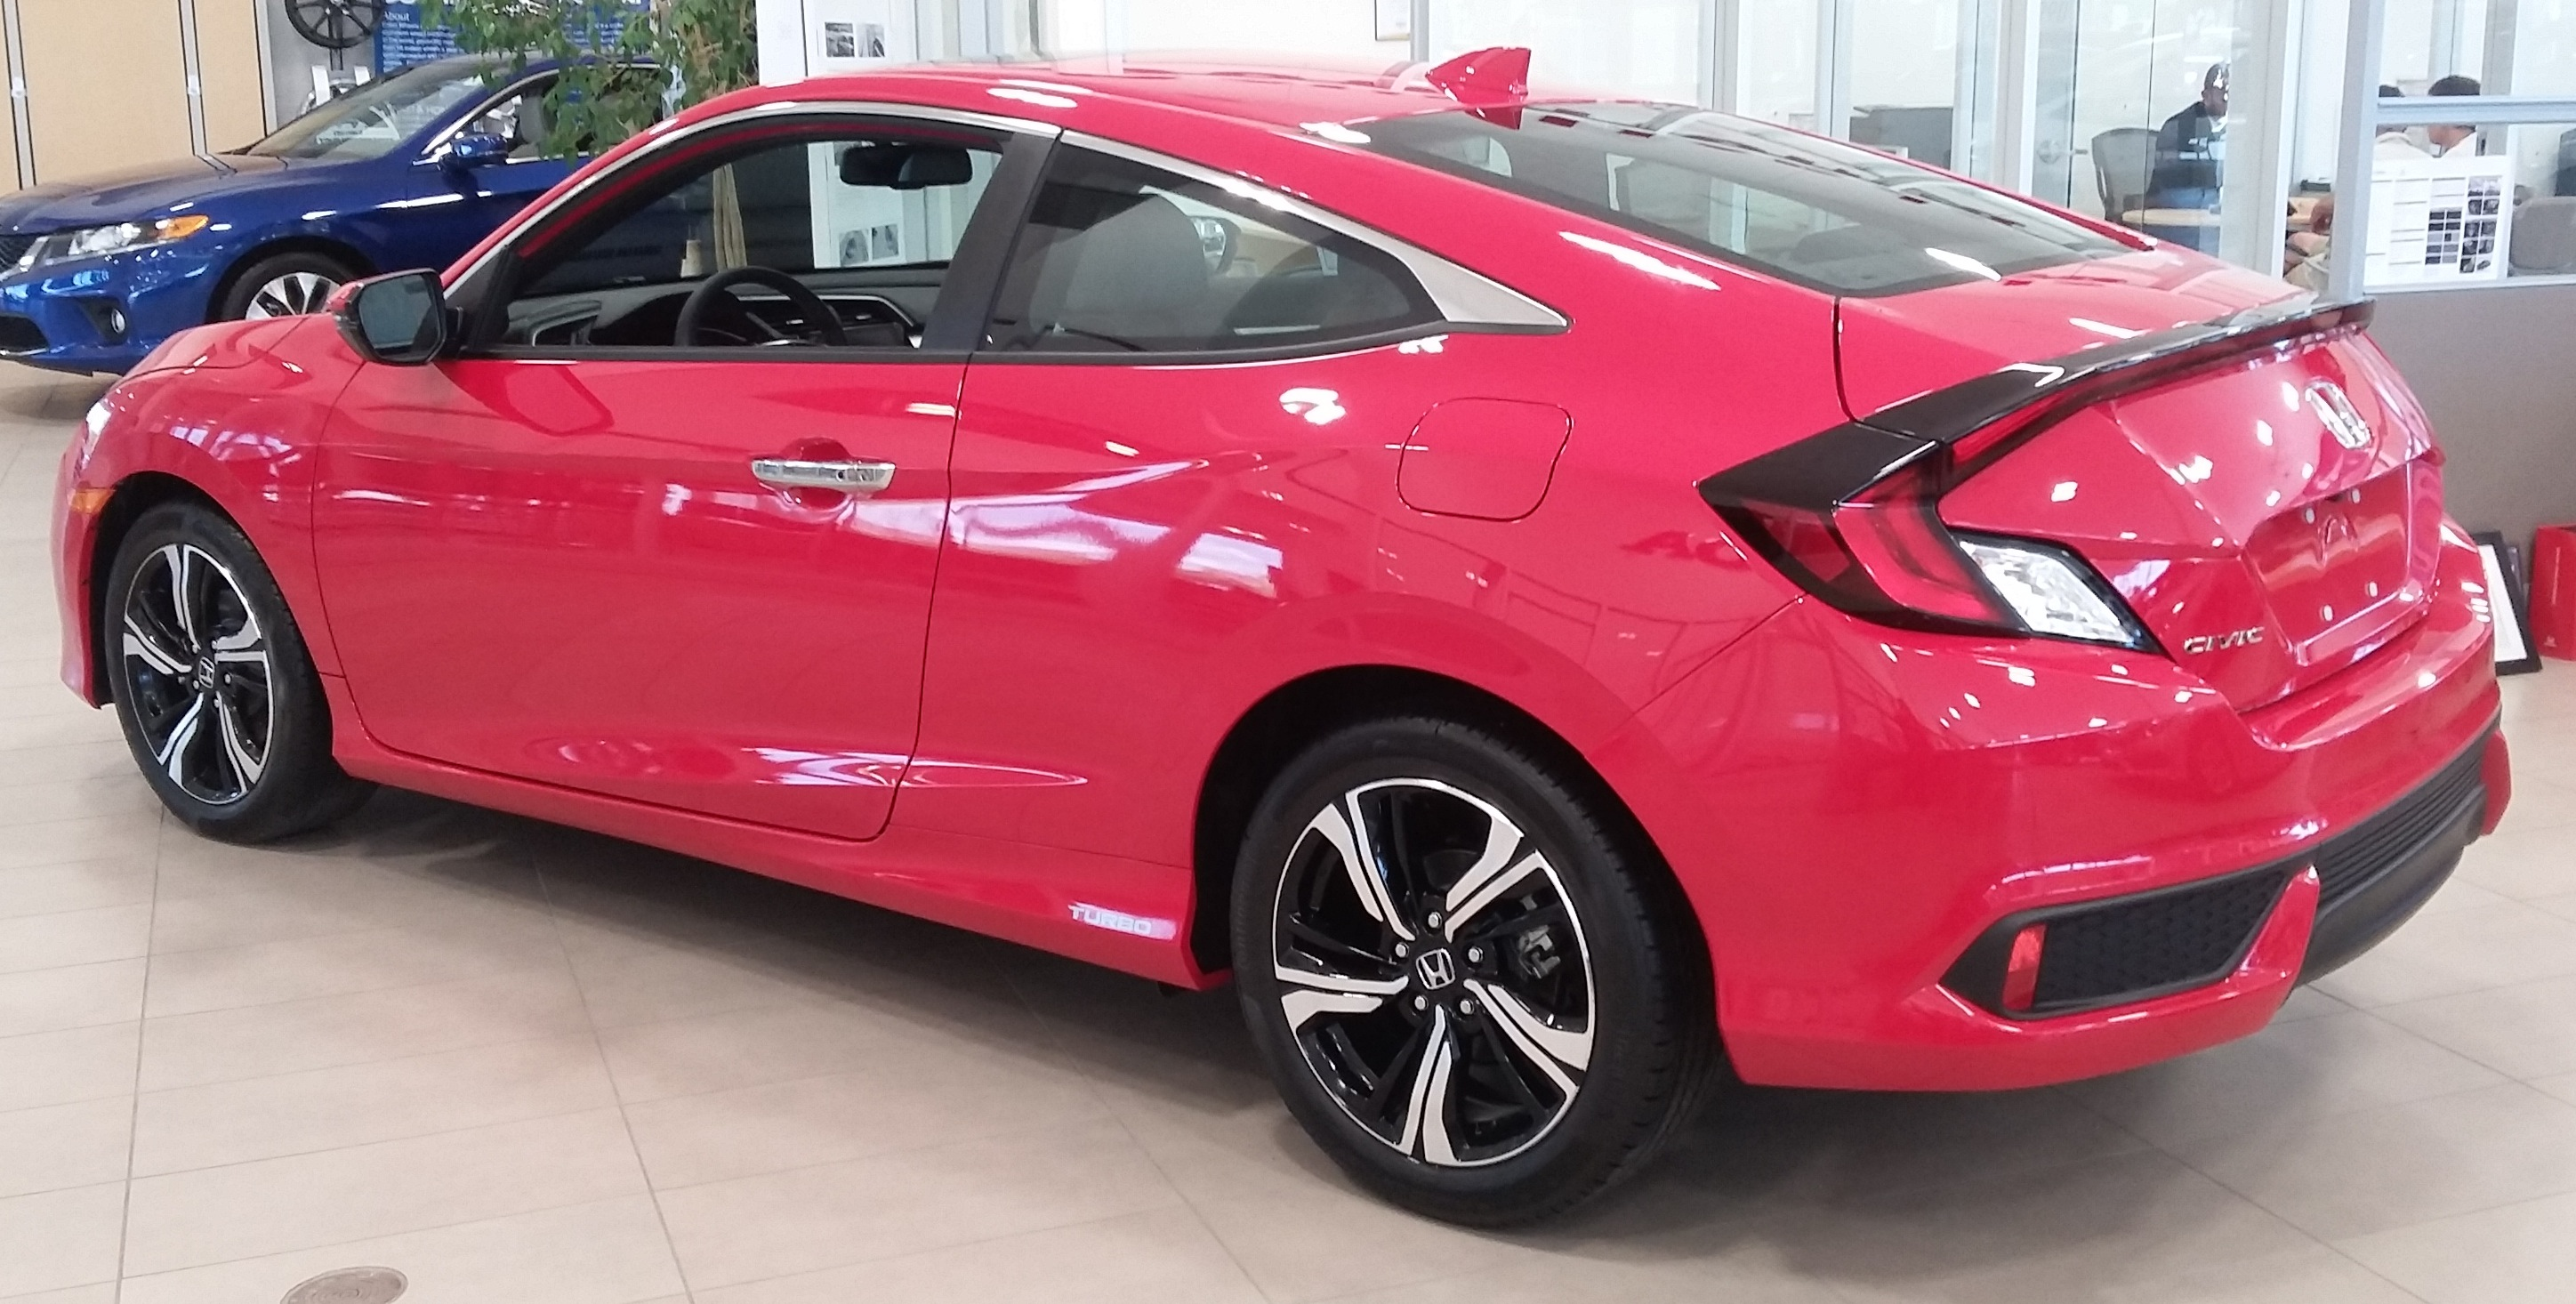 Showroom showoff 2016 civic touring coupe dow honda for What does the econ button do in a honda civic